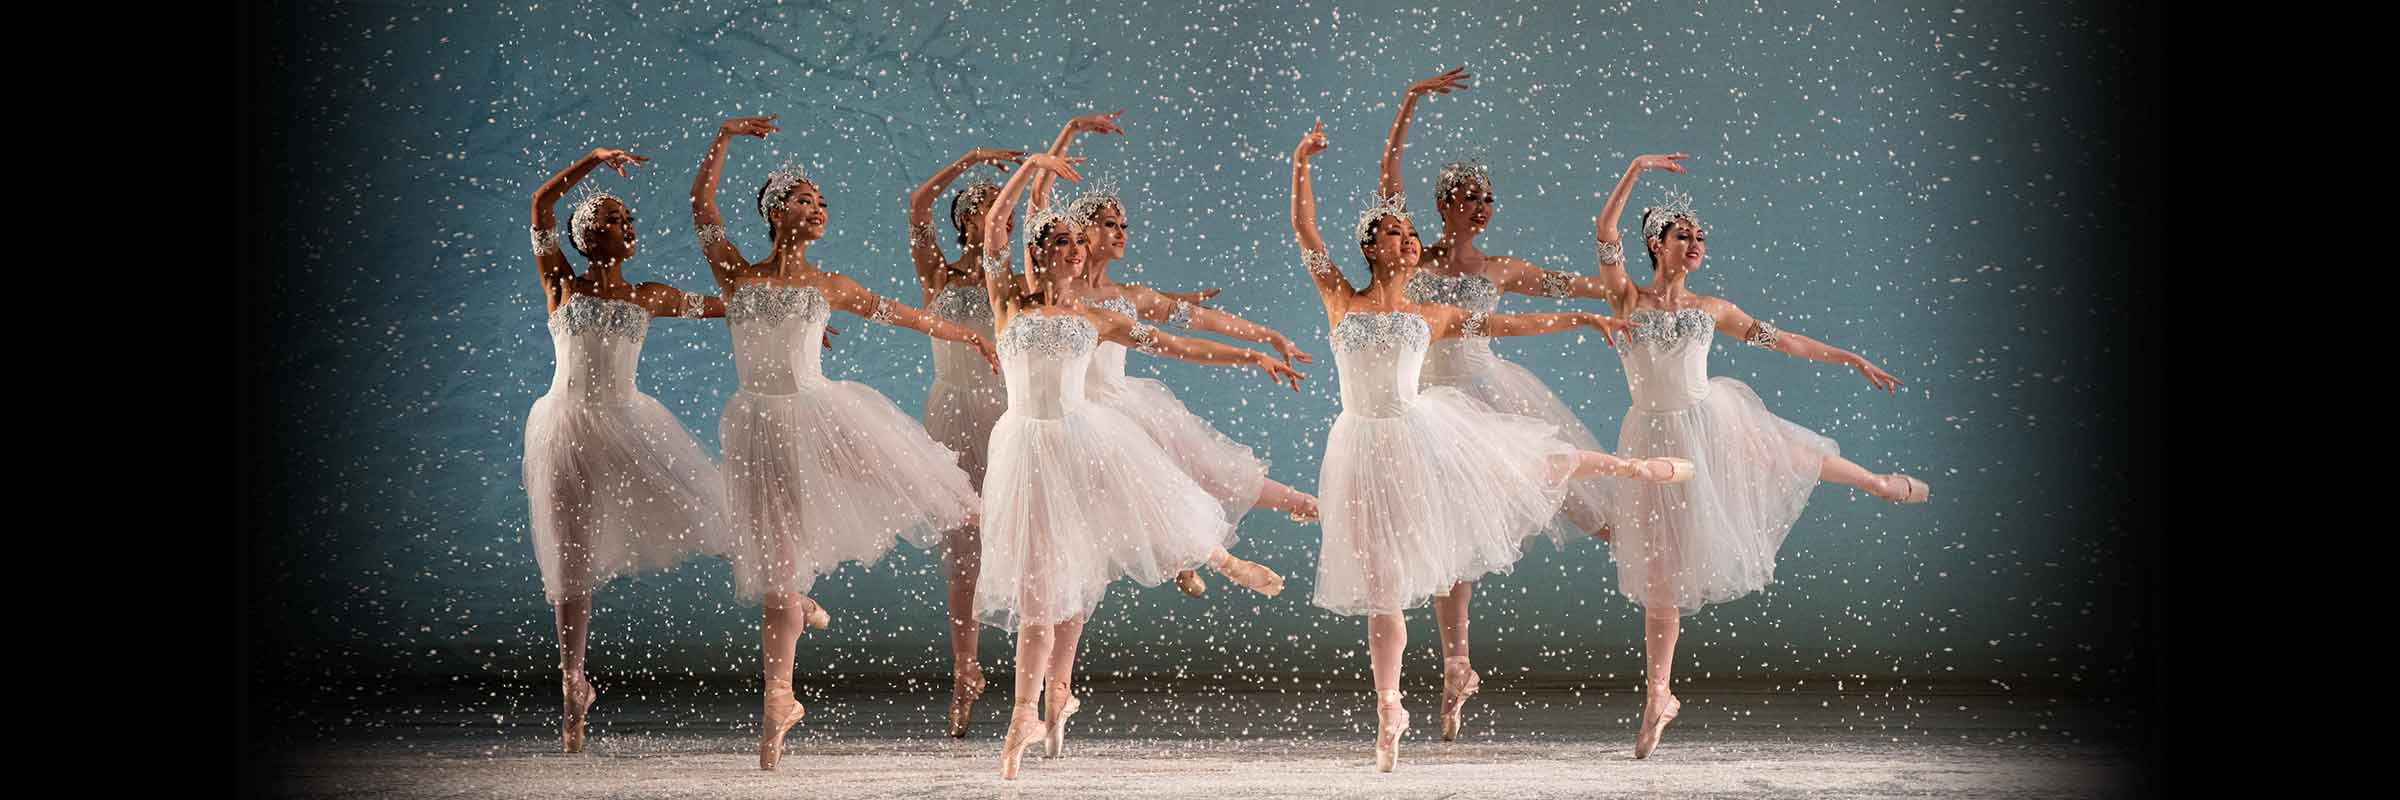 Snow falls as eight Snowflakes jump right, looking left, right legs down, left legs and arms out, right arms curved overhead